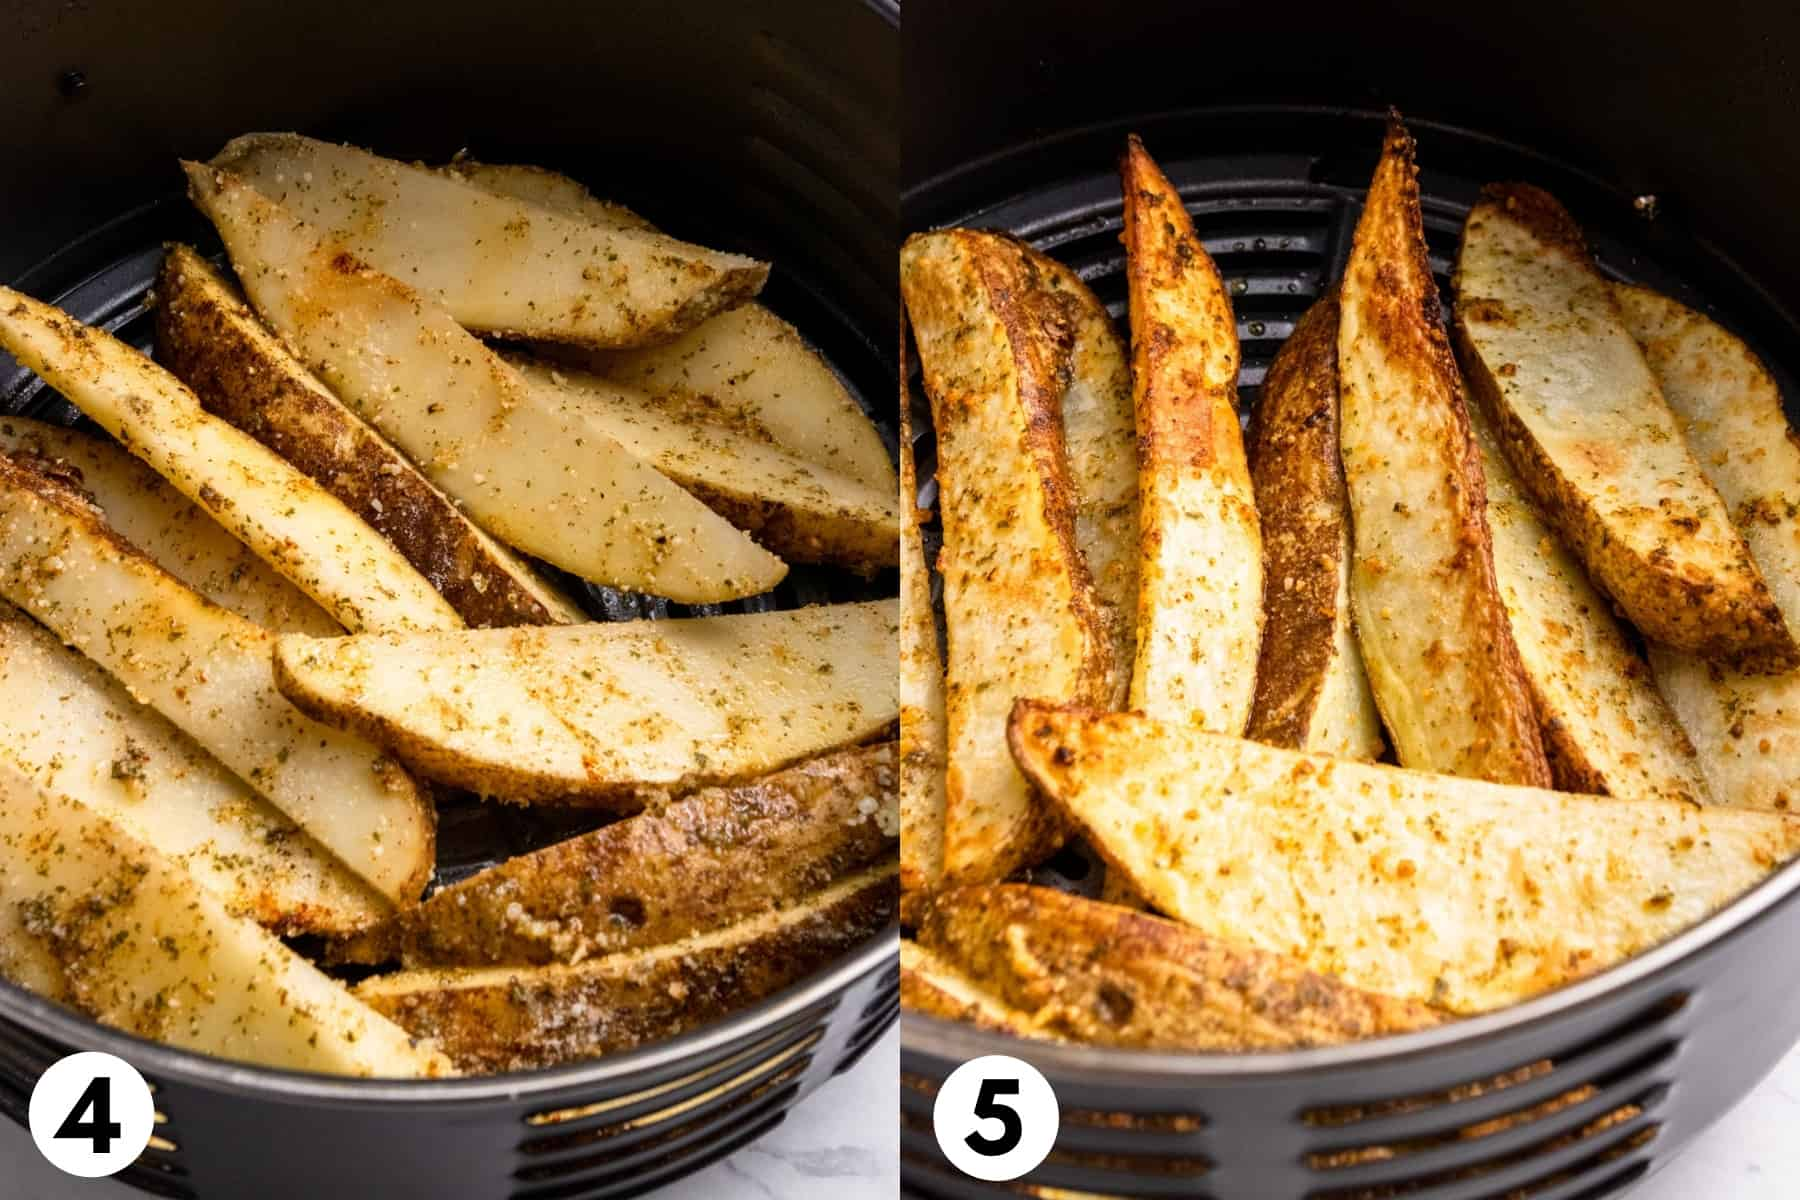 Potato wedges in air fryer.